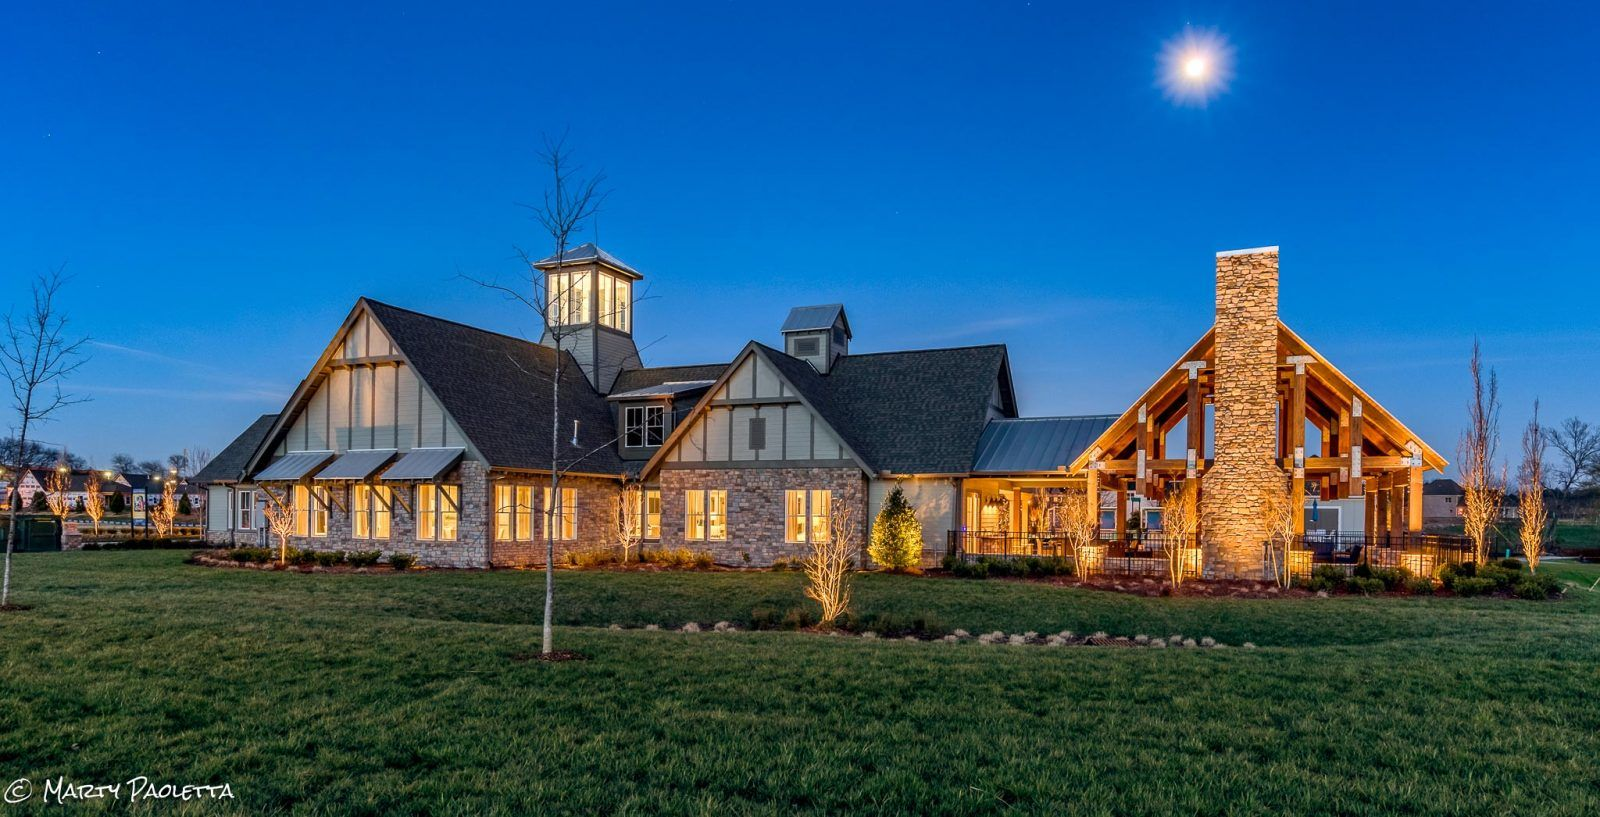 Single Family for Active at Arlington 2c- Homesite 401 279 Croft Road Mount Juliet, Tennessee 37122 United States